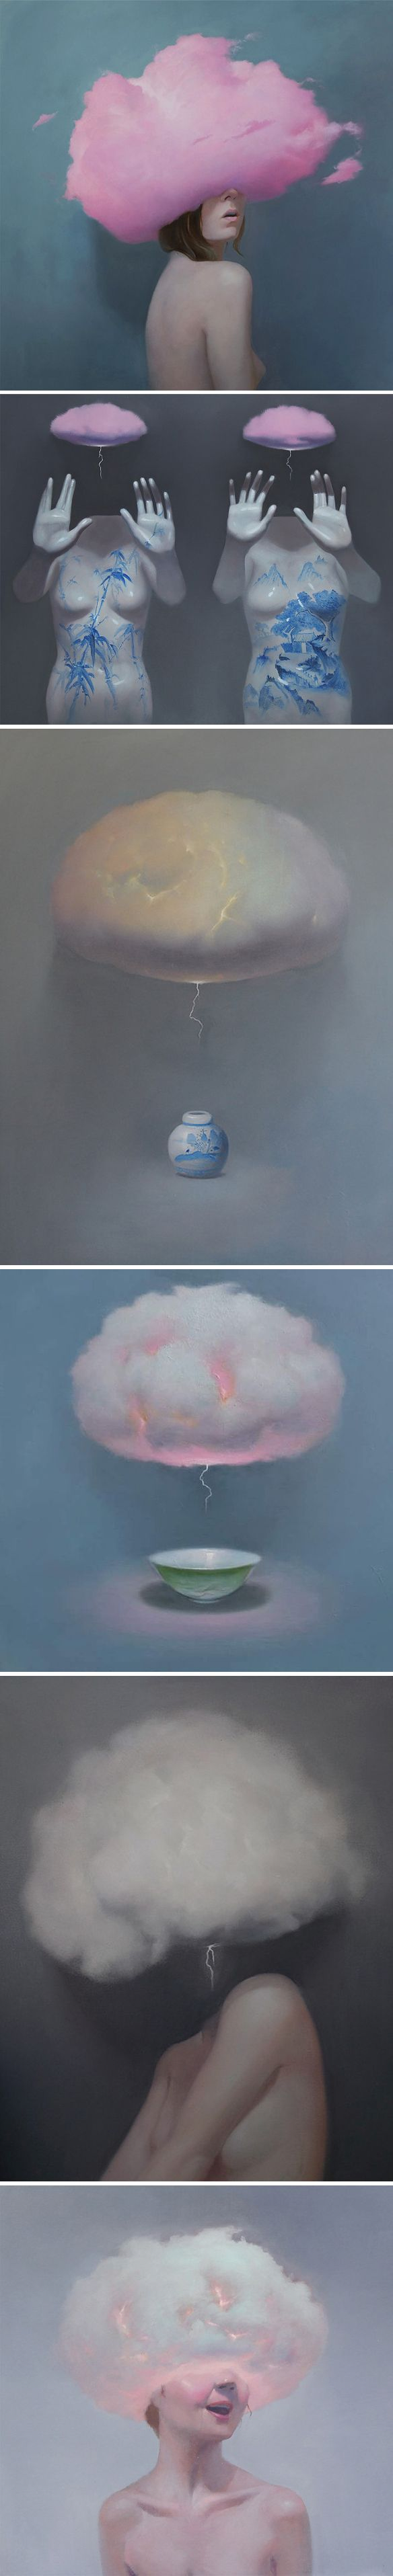 paintings by yang cao